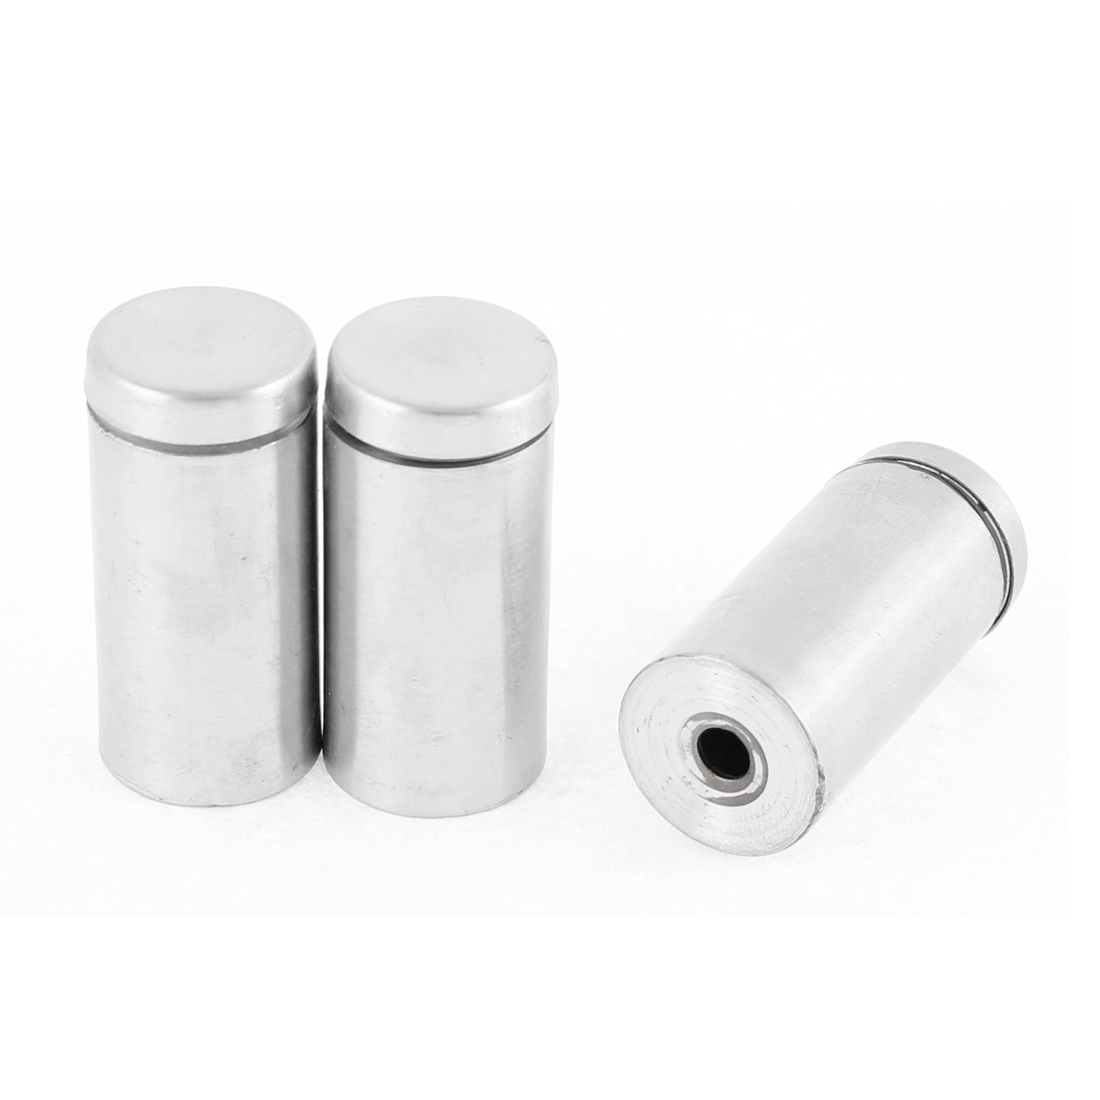 3pcs Stainless Steel Glass Standoff Hardware Silver Tone 19mm x 40mm